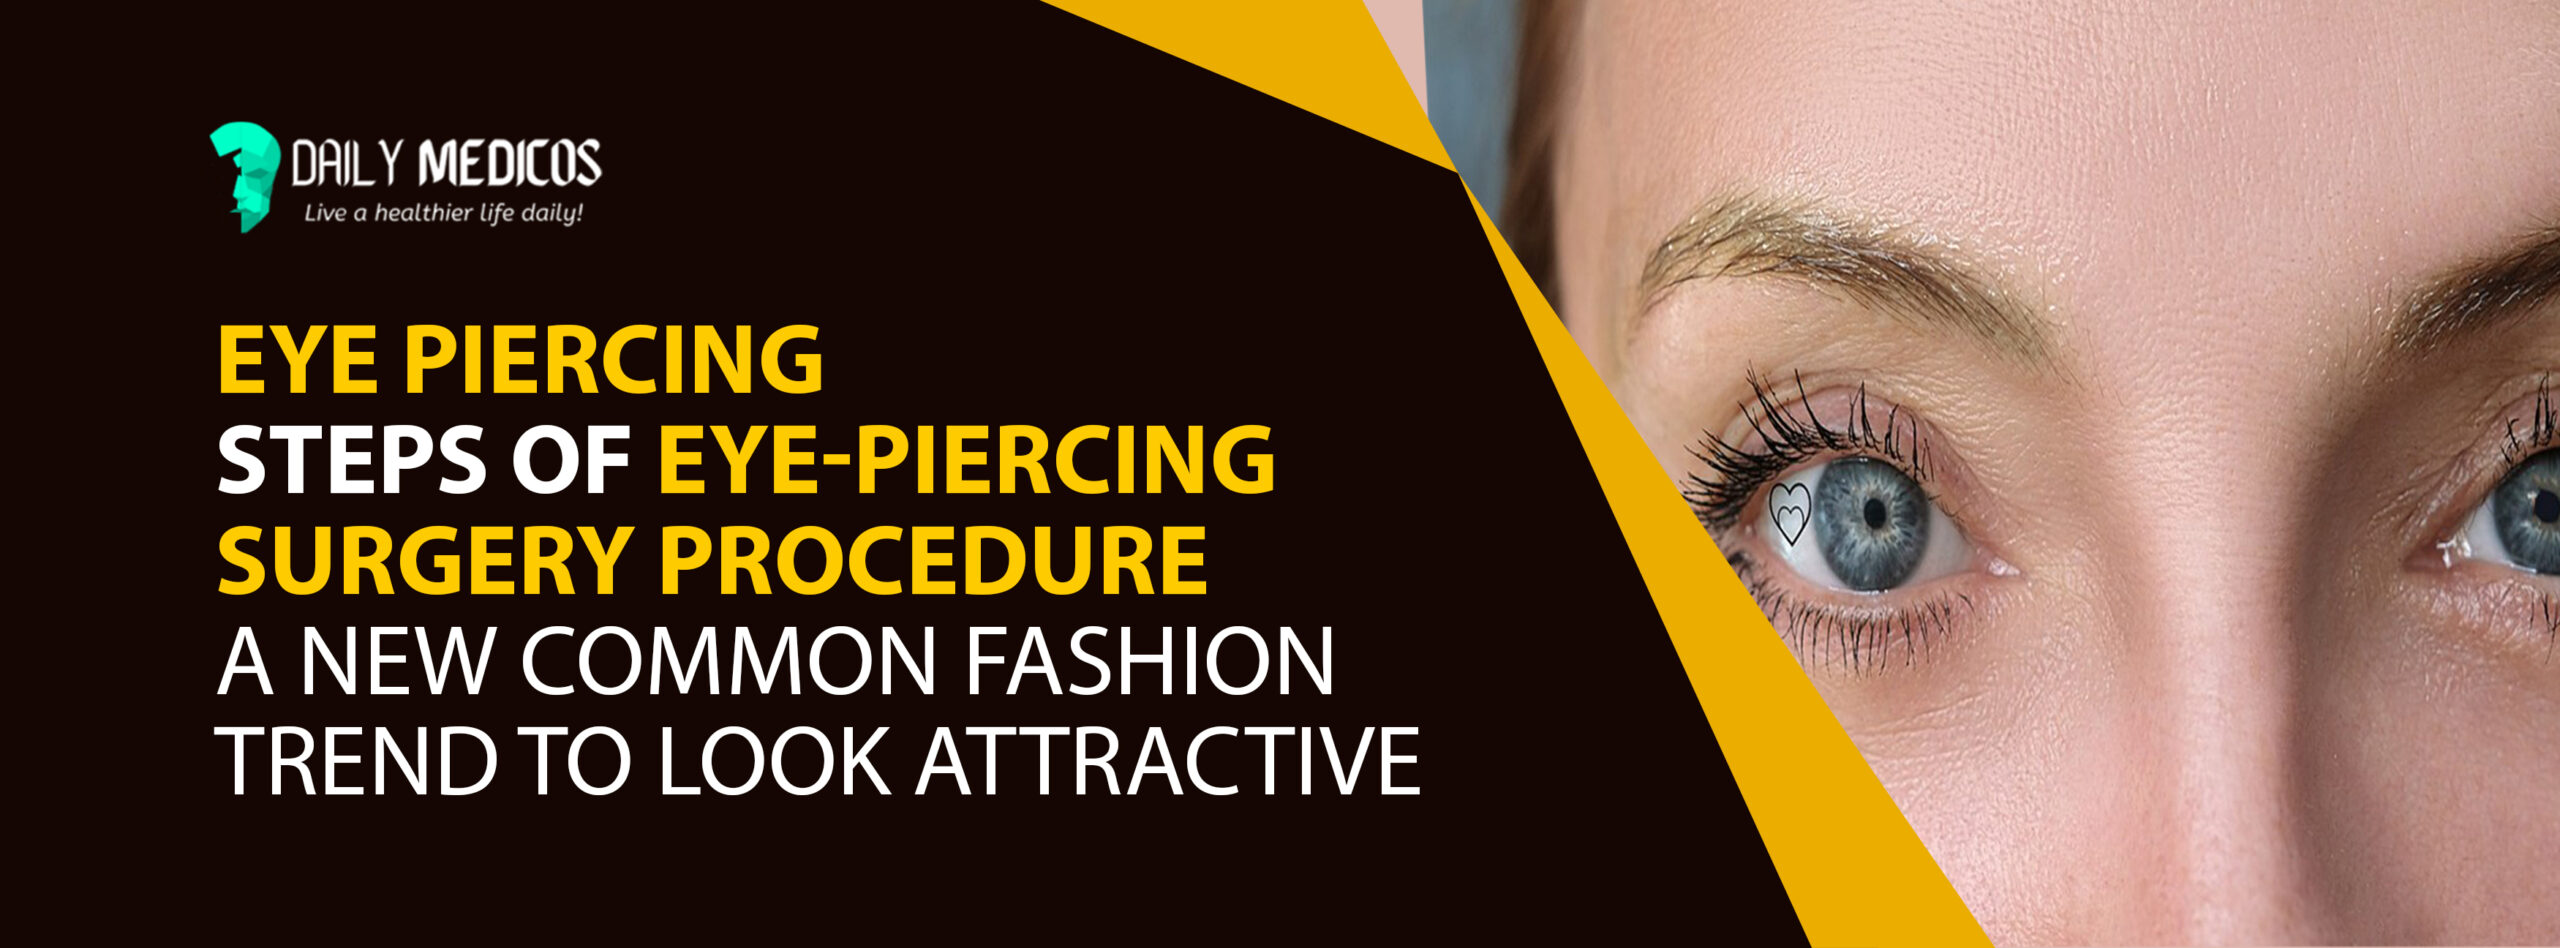 Eye Piercing: Steps of Eye-piercing Surgery Procedure [A new common fashion trend to look attractive] 19 - Daily Medicos